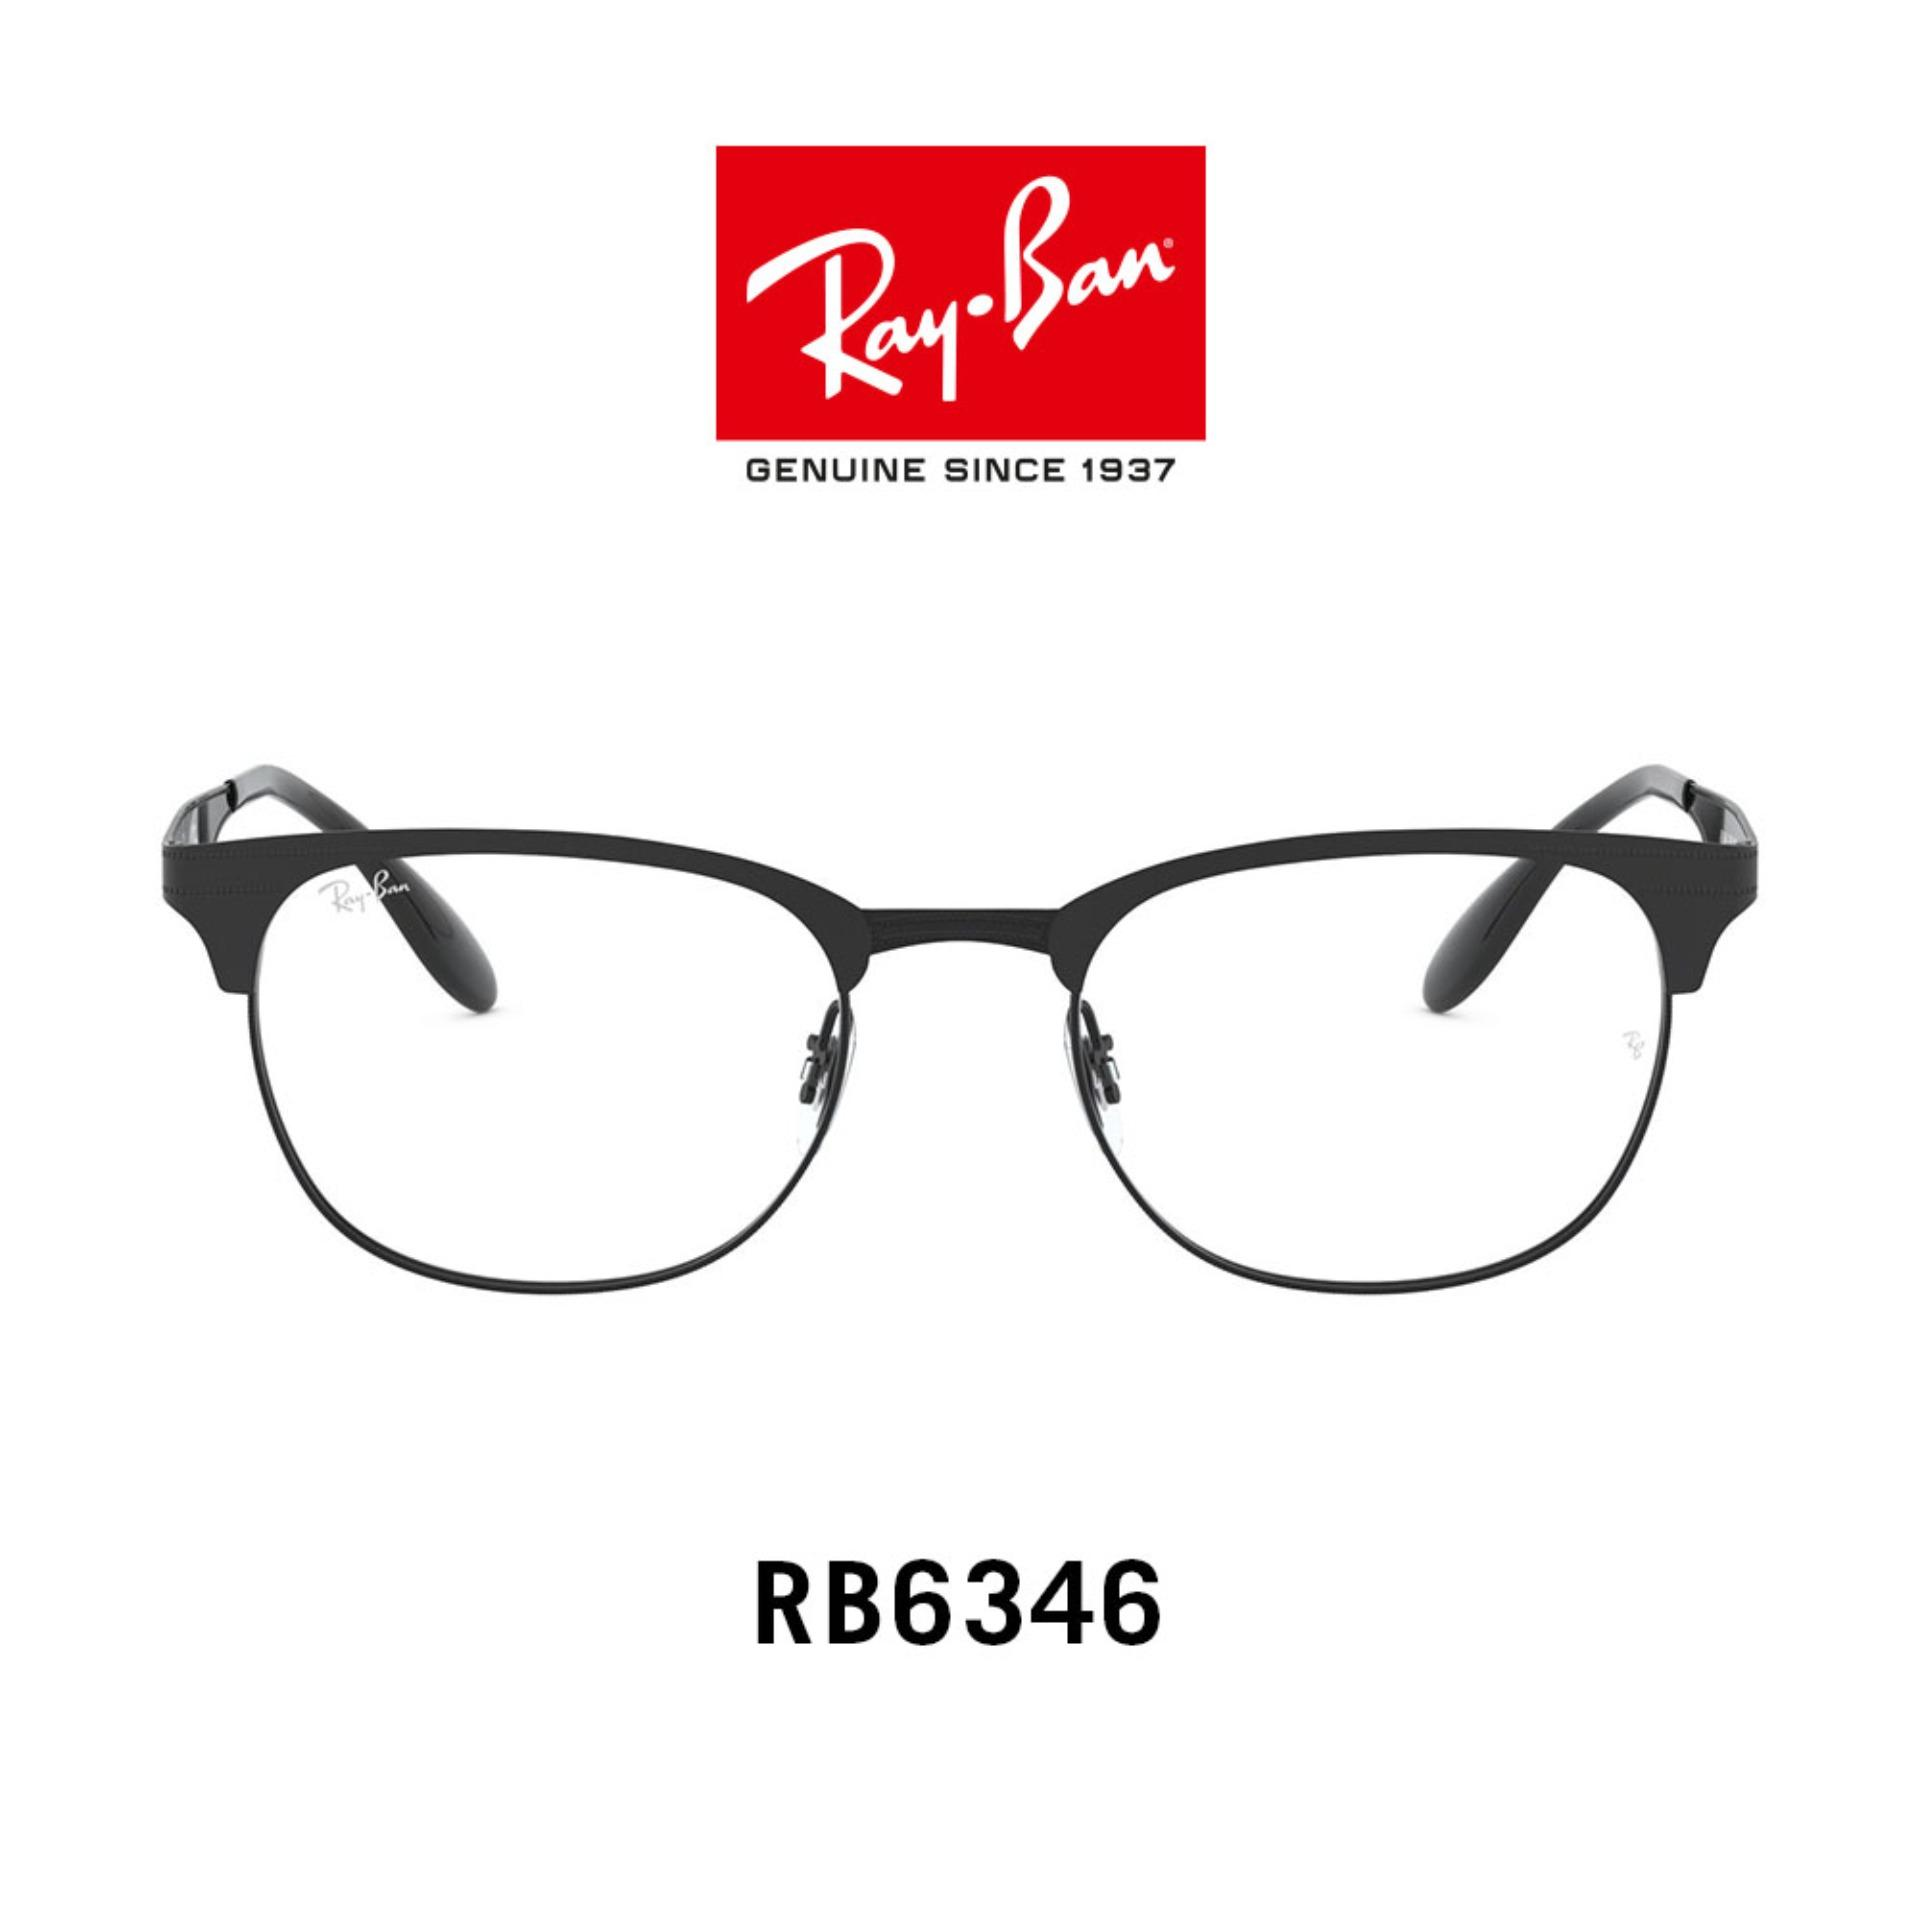 488bb64474 Ray Ban Philippines: Ray Ban price list - Shades & Sunglasses for ...